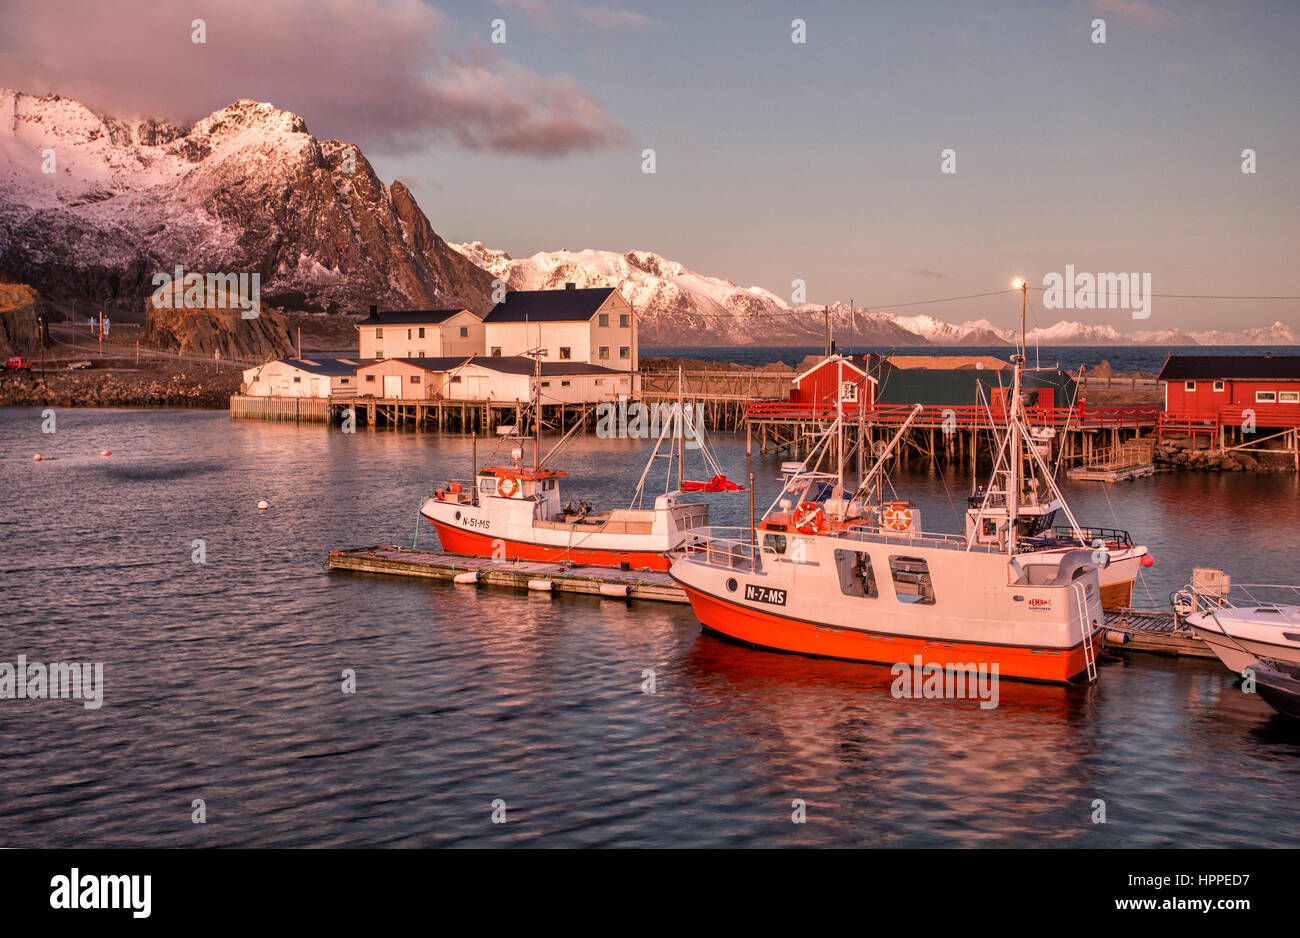 Hamnoy village, Lofoten Islands, Norway, Europe - Stock Image